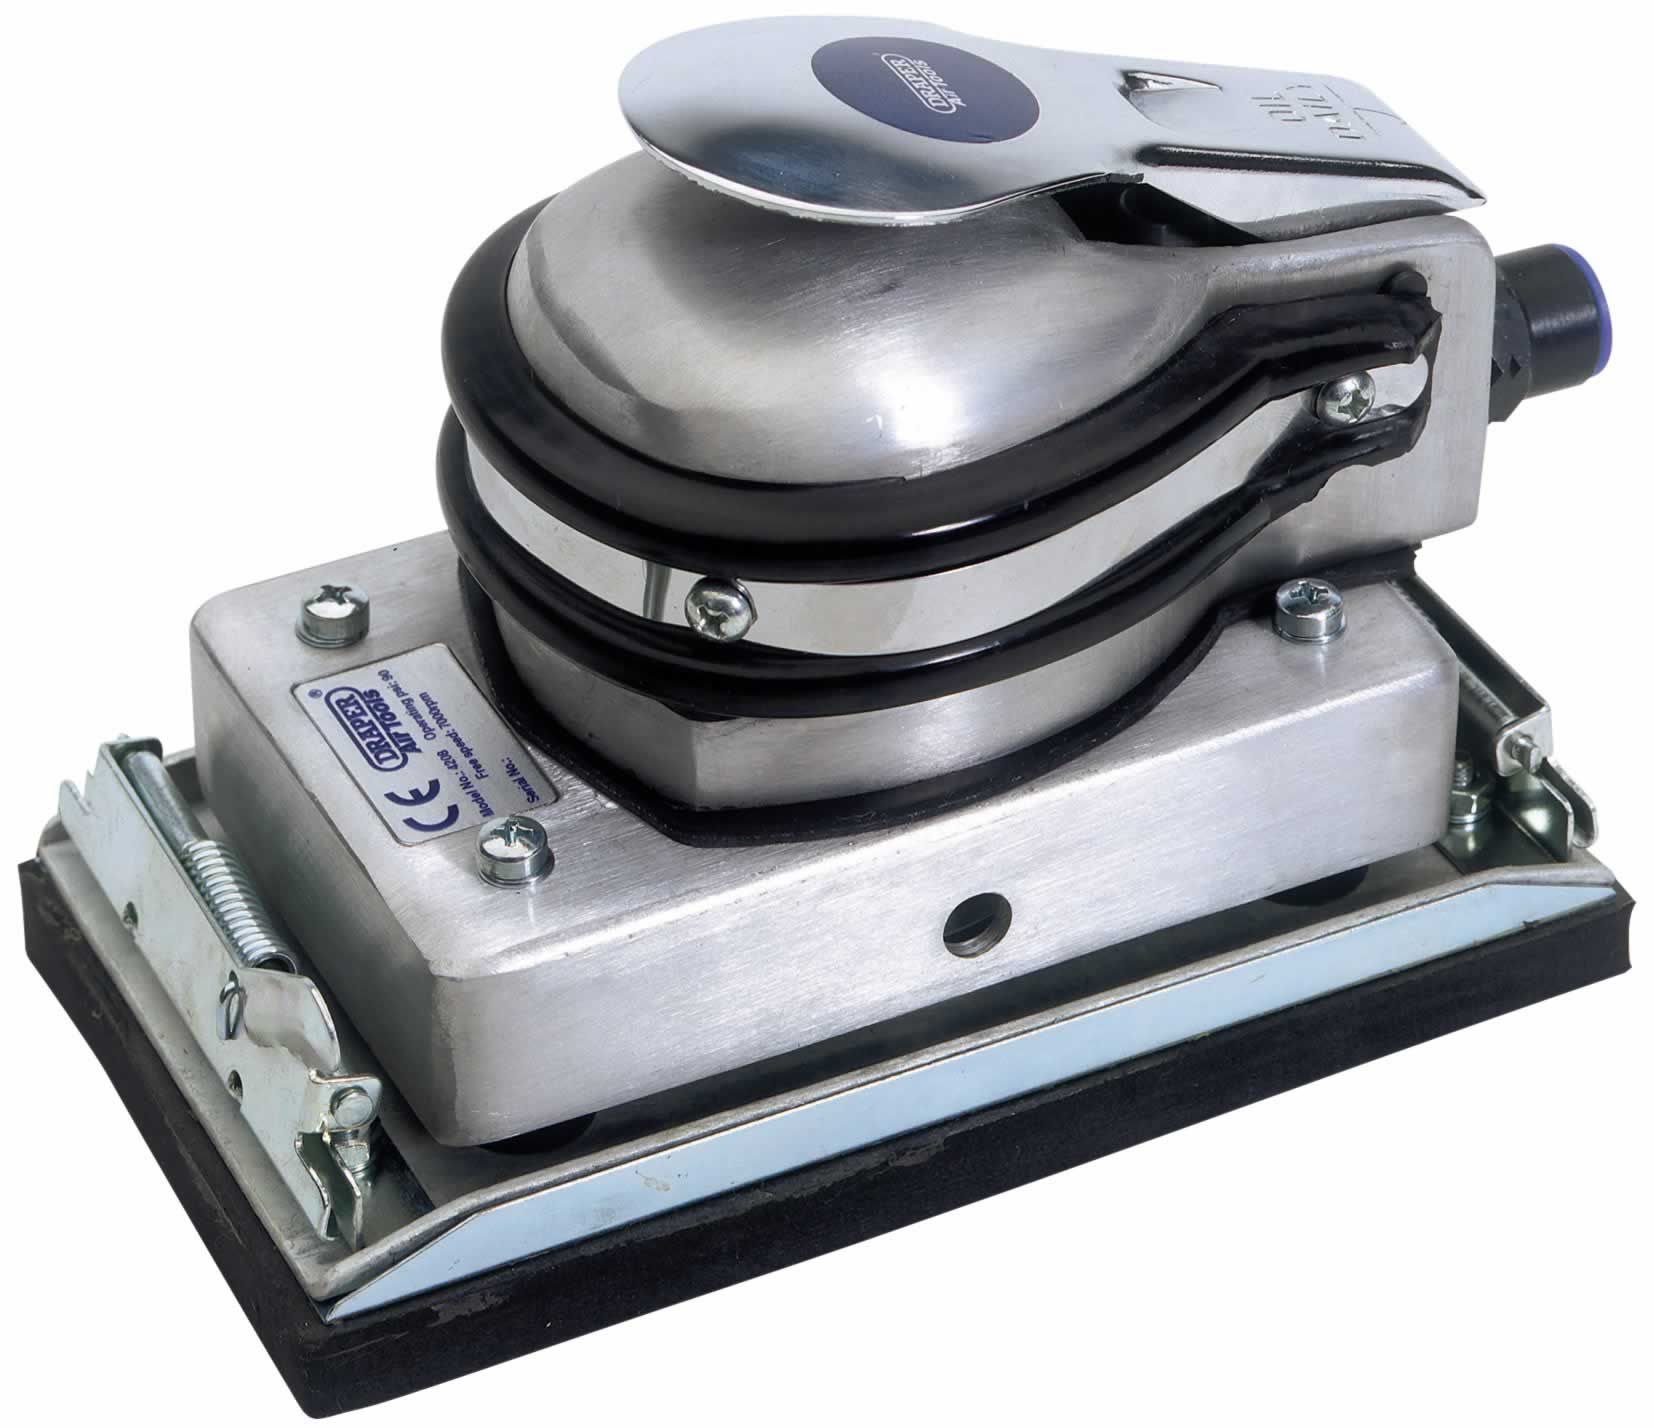 ORBITAL OR JITTERBUG AIR SANDER